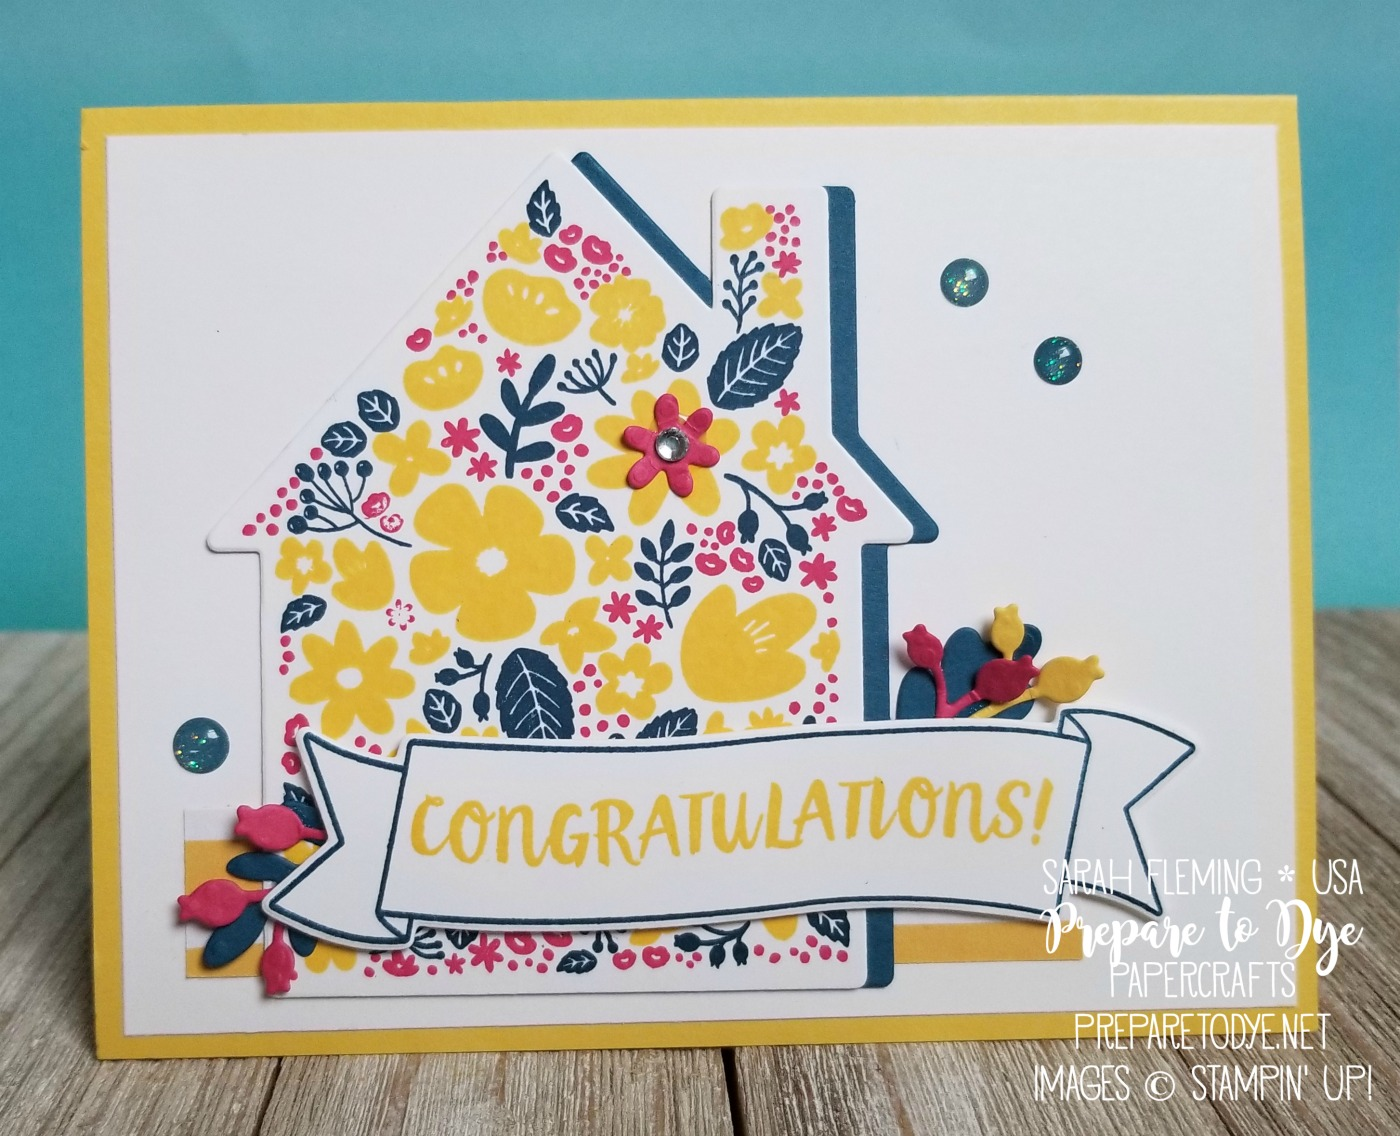 Stampin' Up! Home Life bundle with Welcome Home framelits & Glitter Enamel Dots - Sarah Fleming - Prepare to Dye Papercrafts